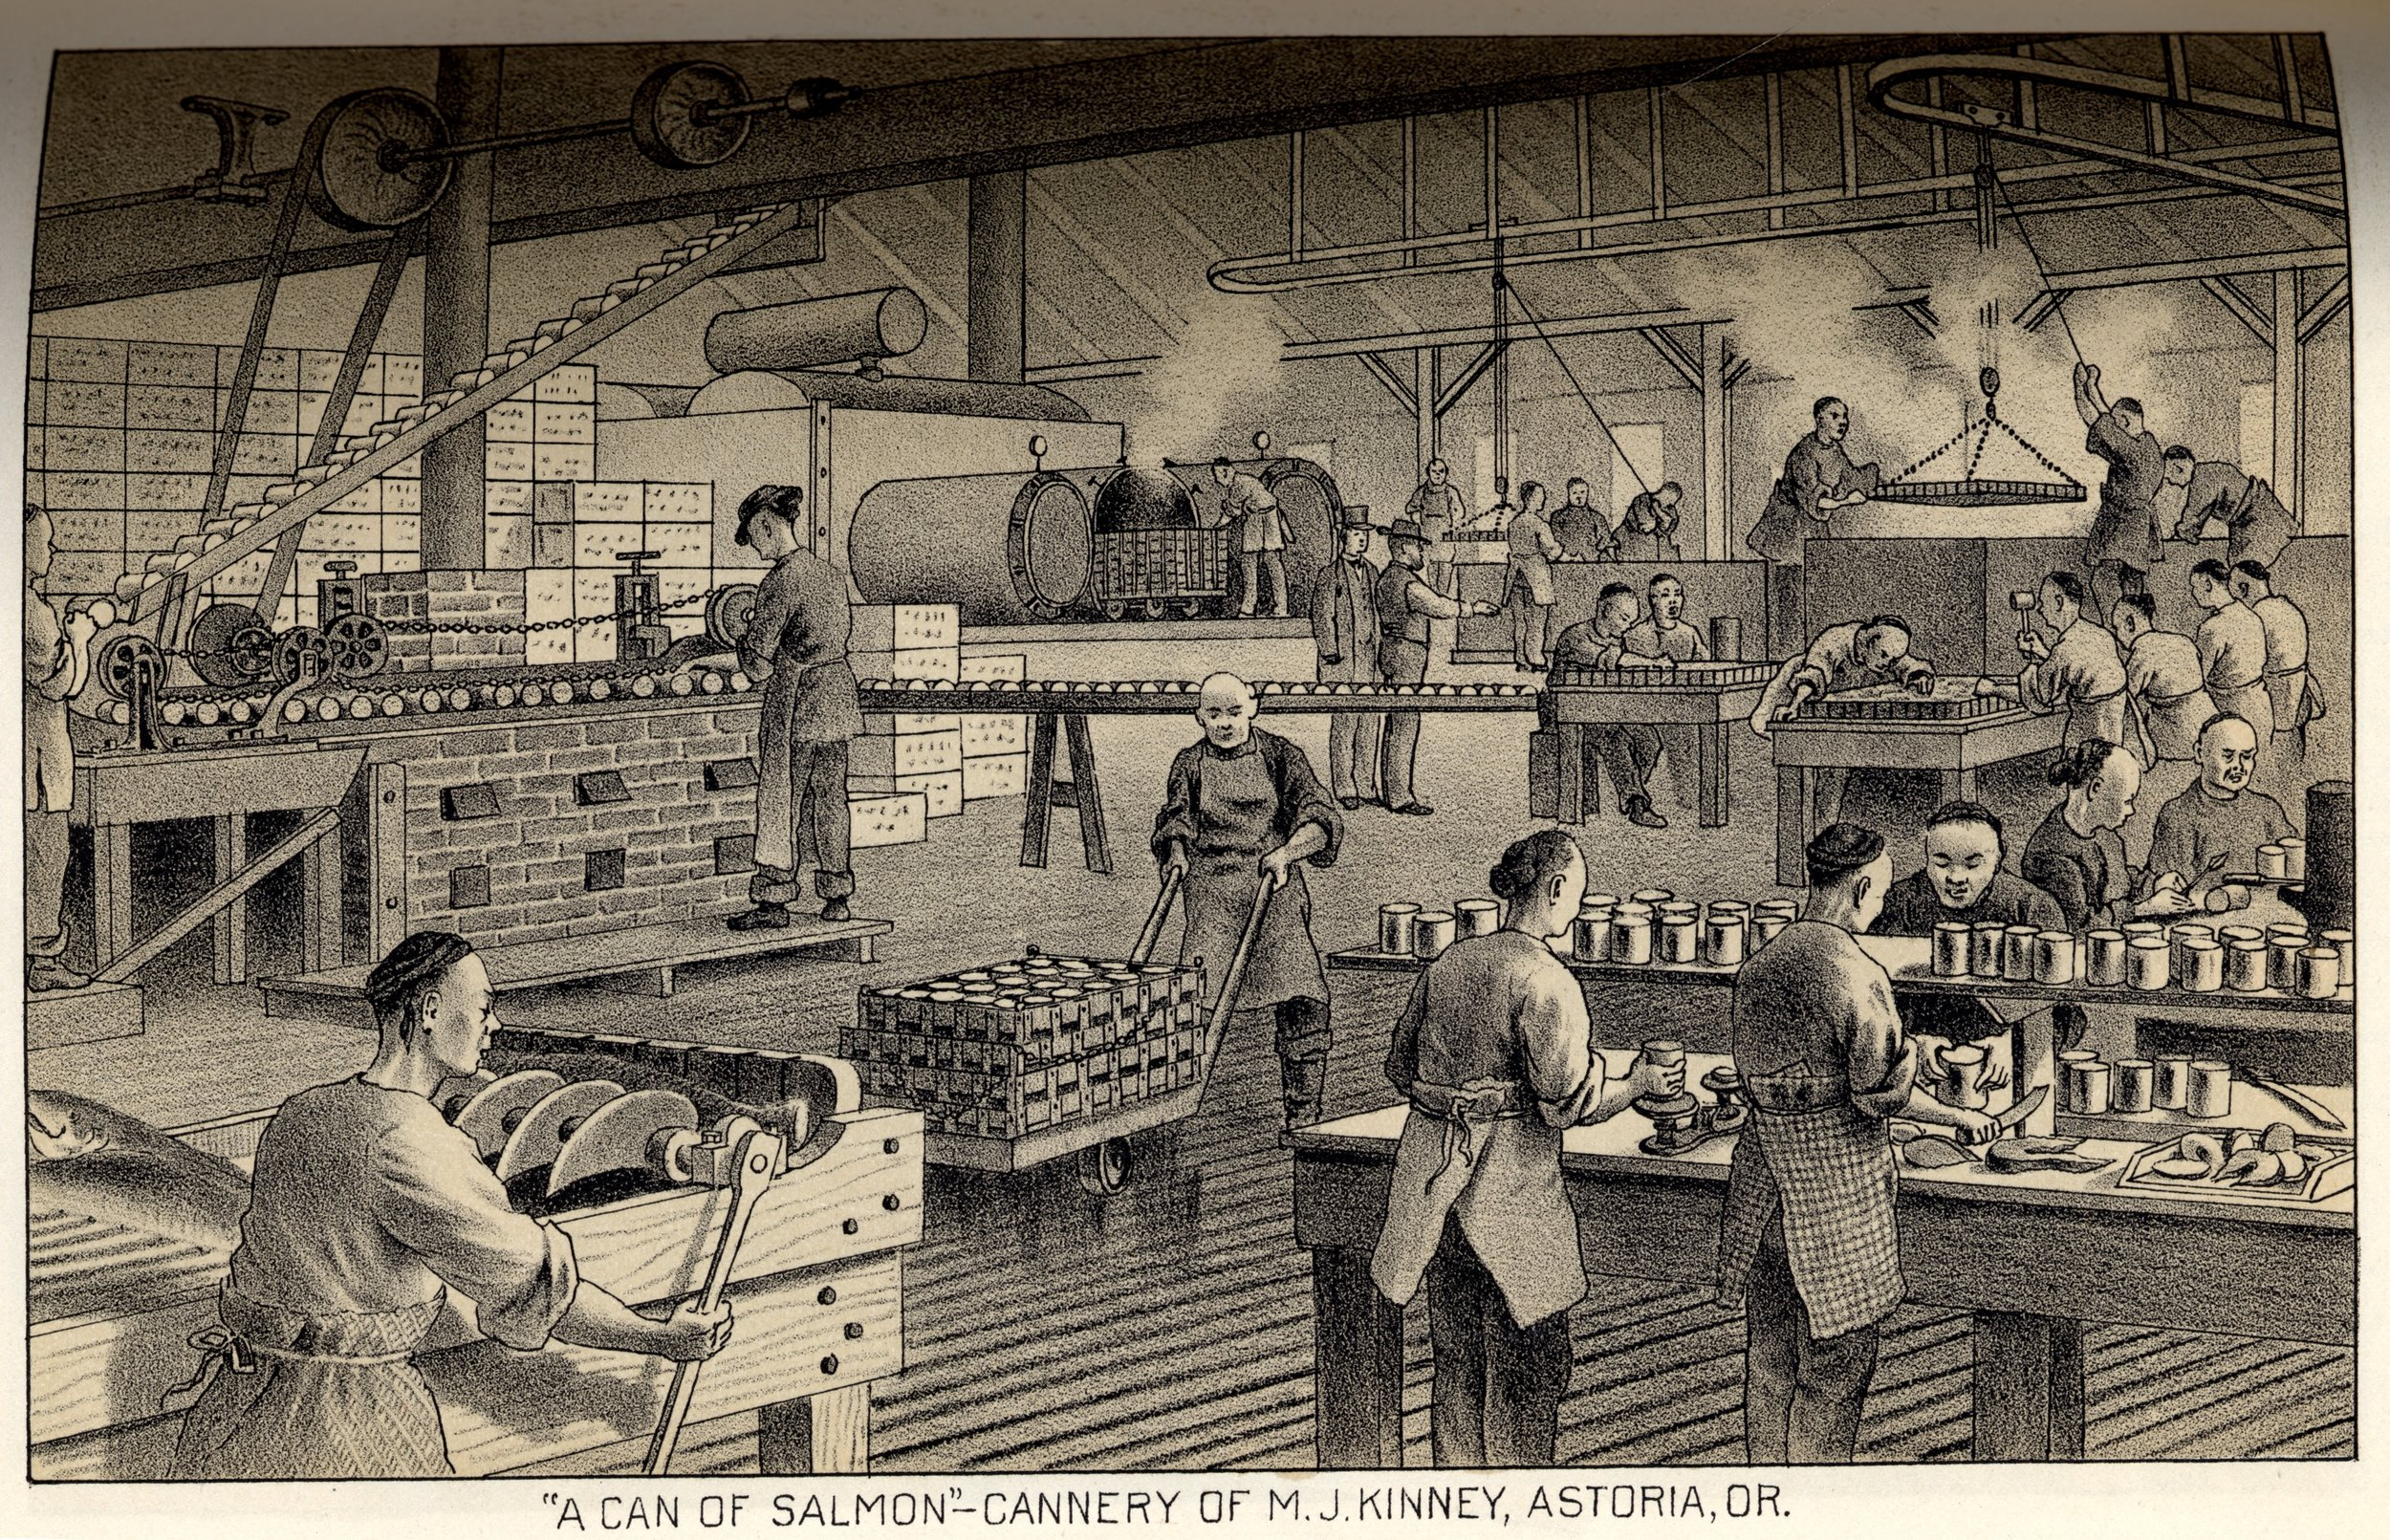 Chinese cannery workers labor inside a cannery in Astoria. This exceptional image shows much of the salmon canning process. From butchering fish with a gang knife, to filling and weighing cans, to soldering filled cans and venting them before sealing them again, until the cans are placed in retorts and finally submerged in water to test for any bubbles.   West Shore , June 1887.